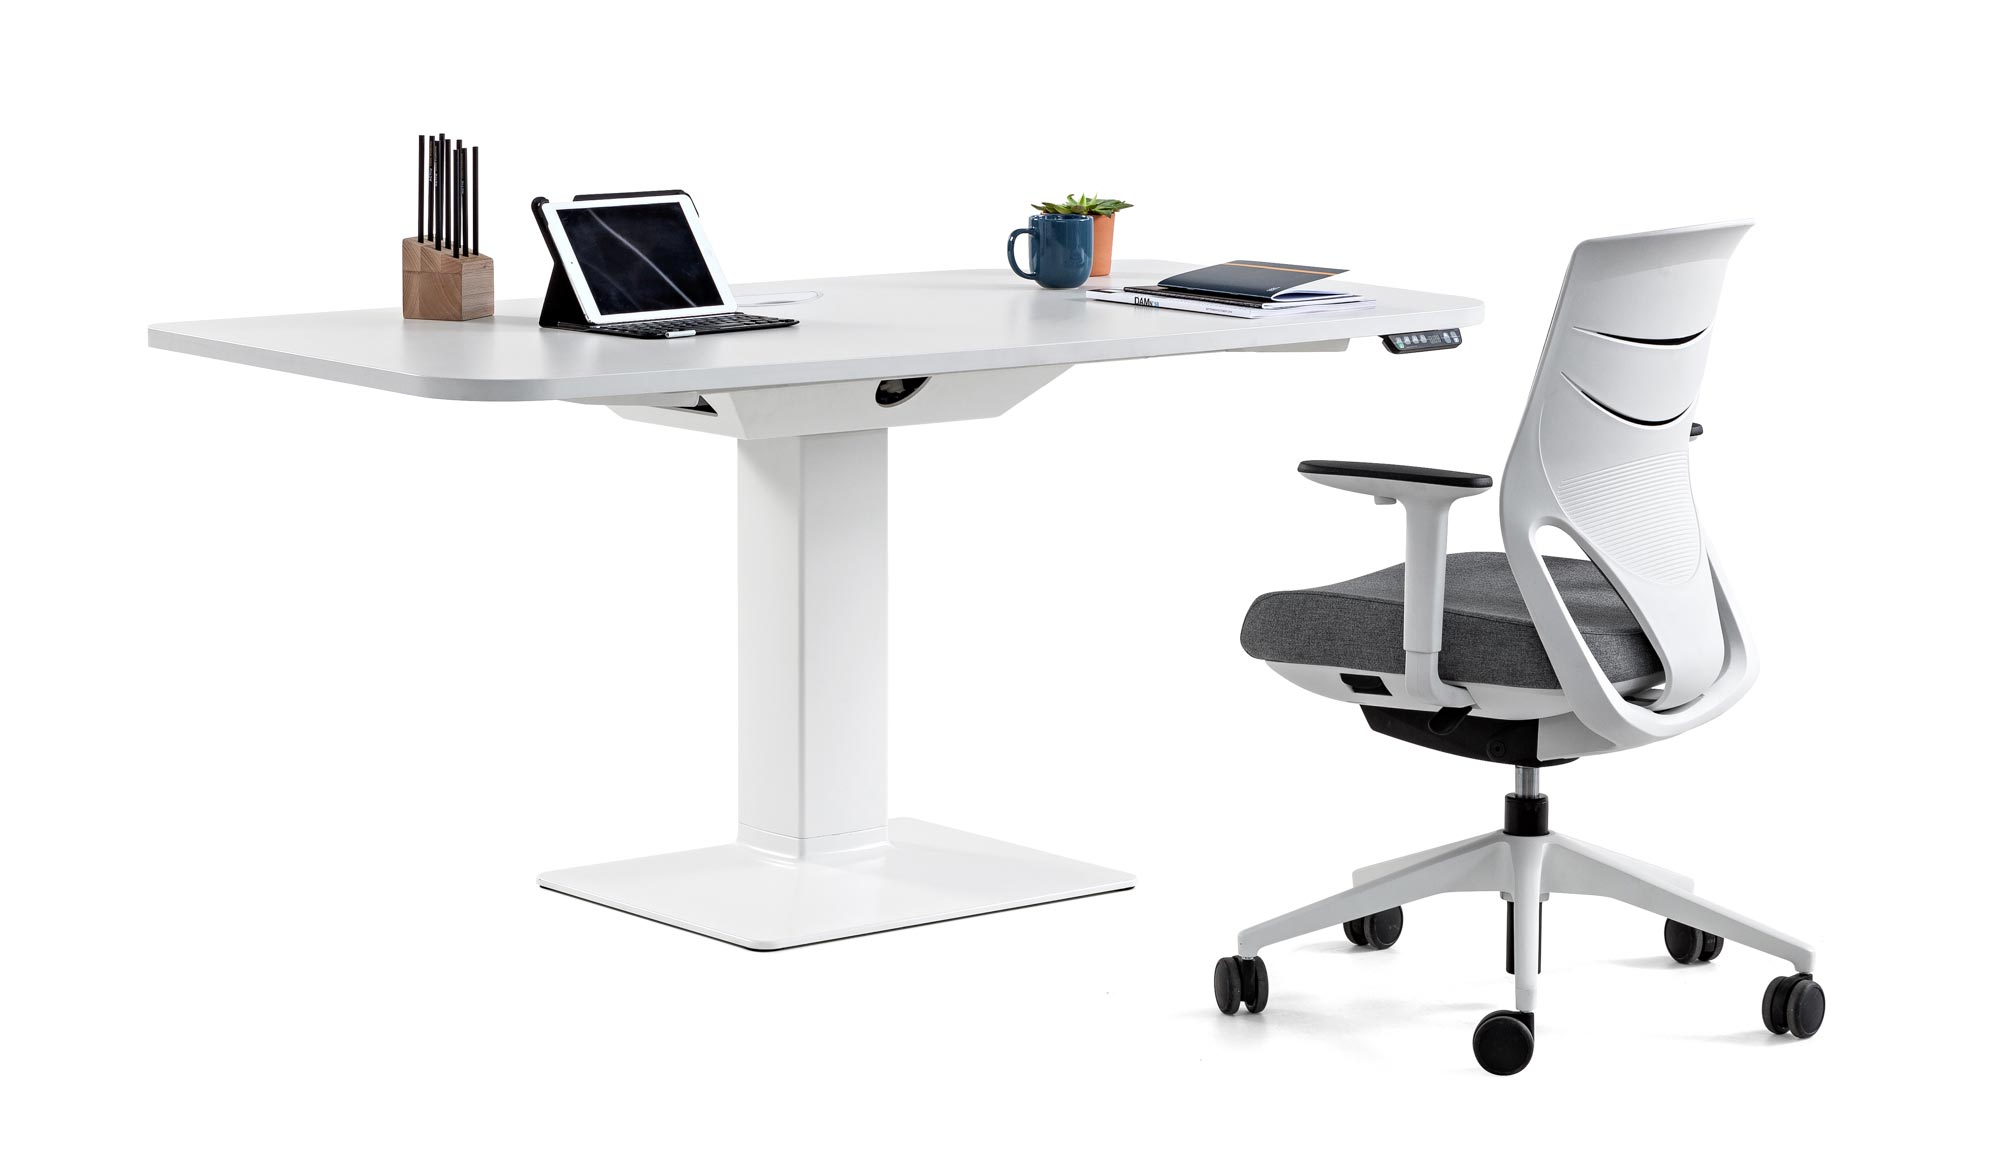 desk power tables personal efit chair white grey armrest comfort tablet coffecup books plant synchrony technology mobility design adjustable quality adaptable masof actiu